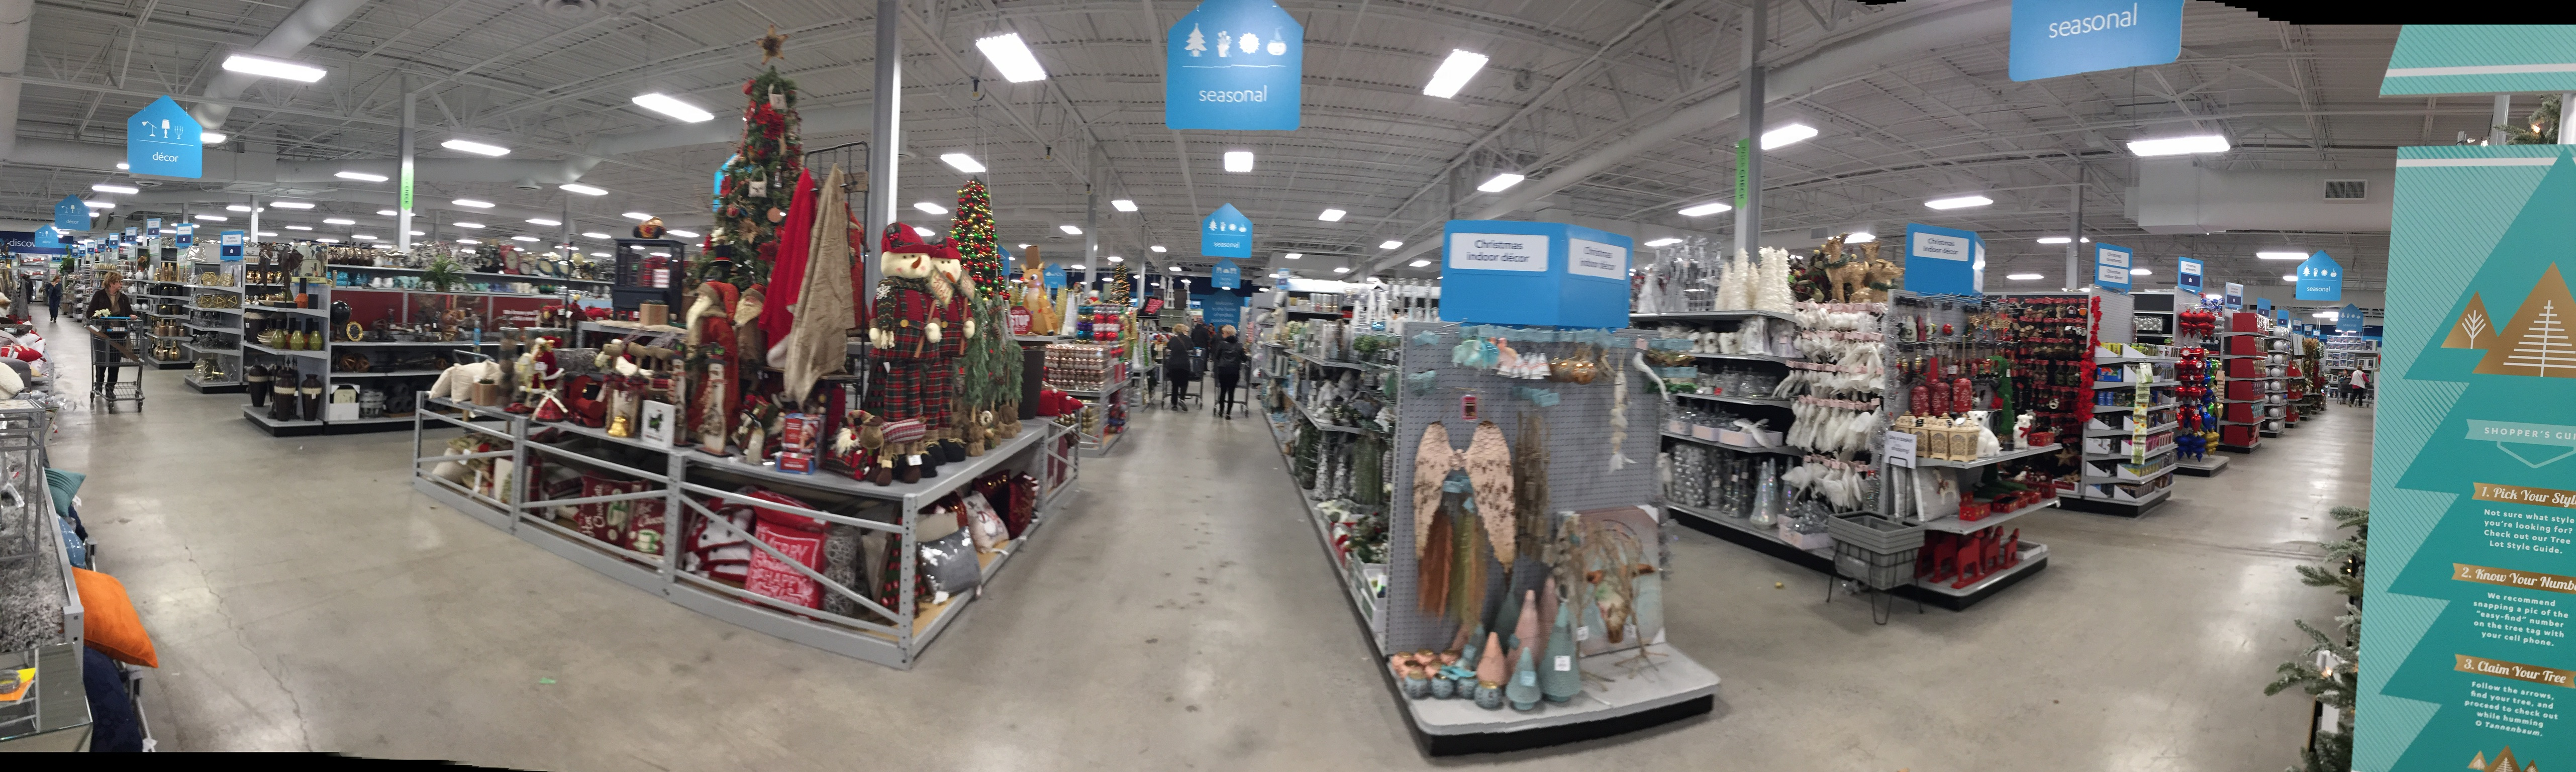 New in Albany  At Home  Decor Superstore    Capital Region Finds At Home pano